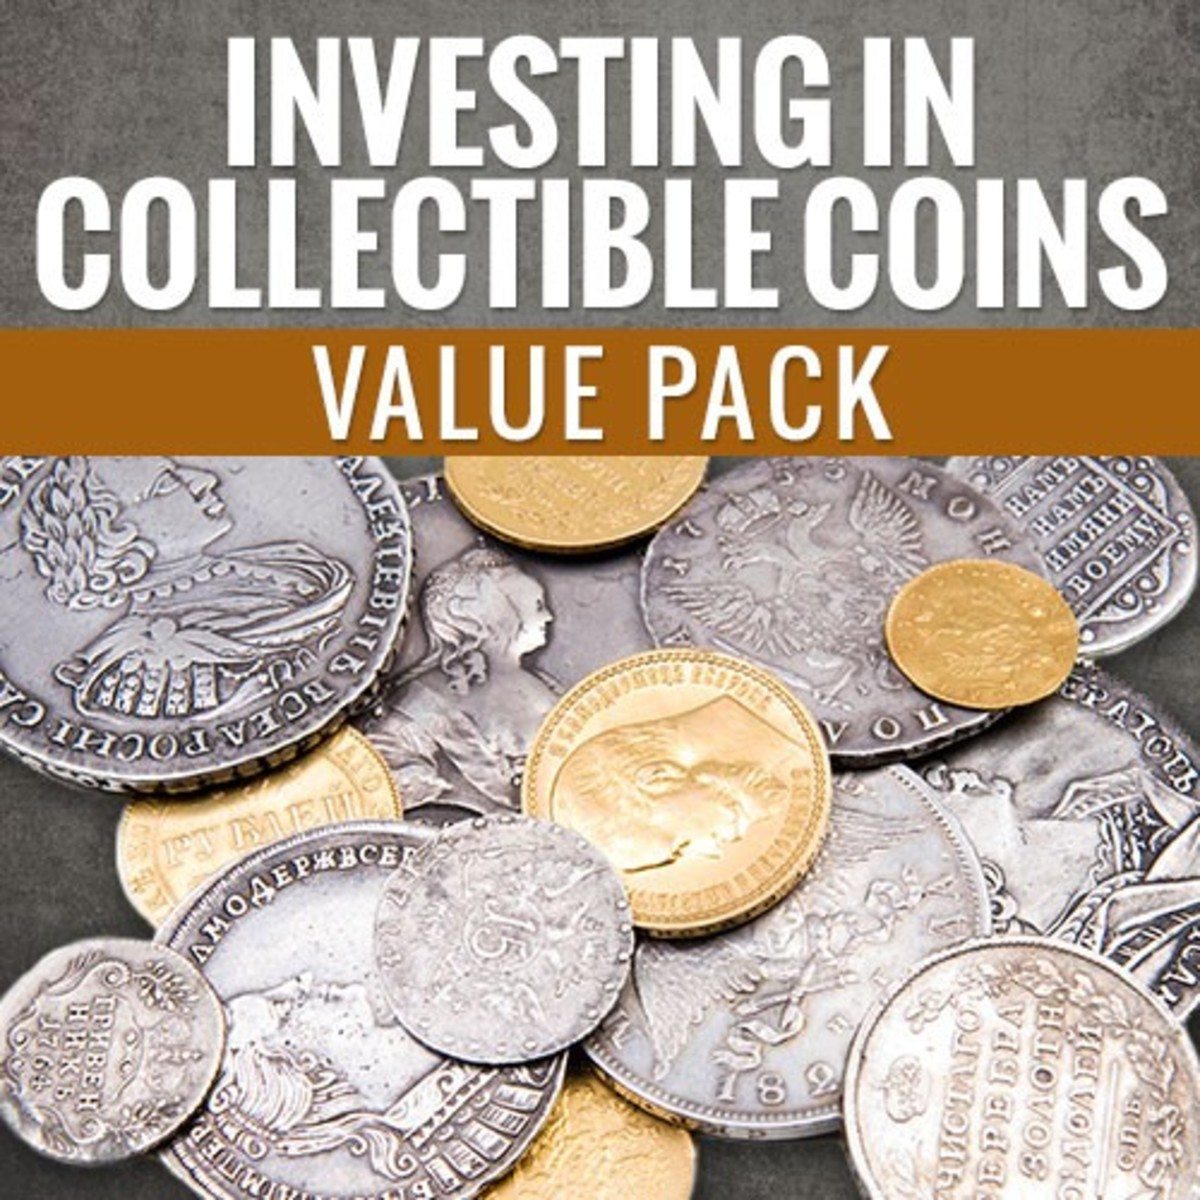 Are you interested in investing in collectible coins, but just don't know where to start? This incredible collection was made with you in mind.